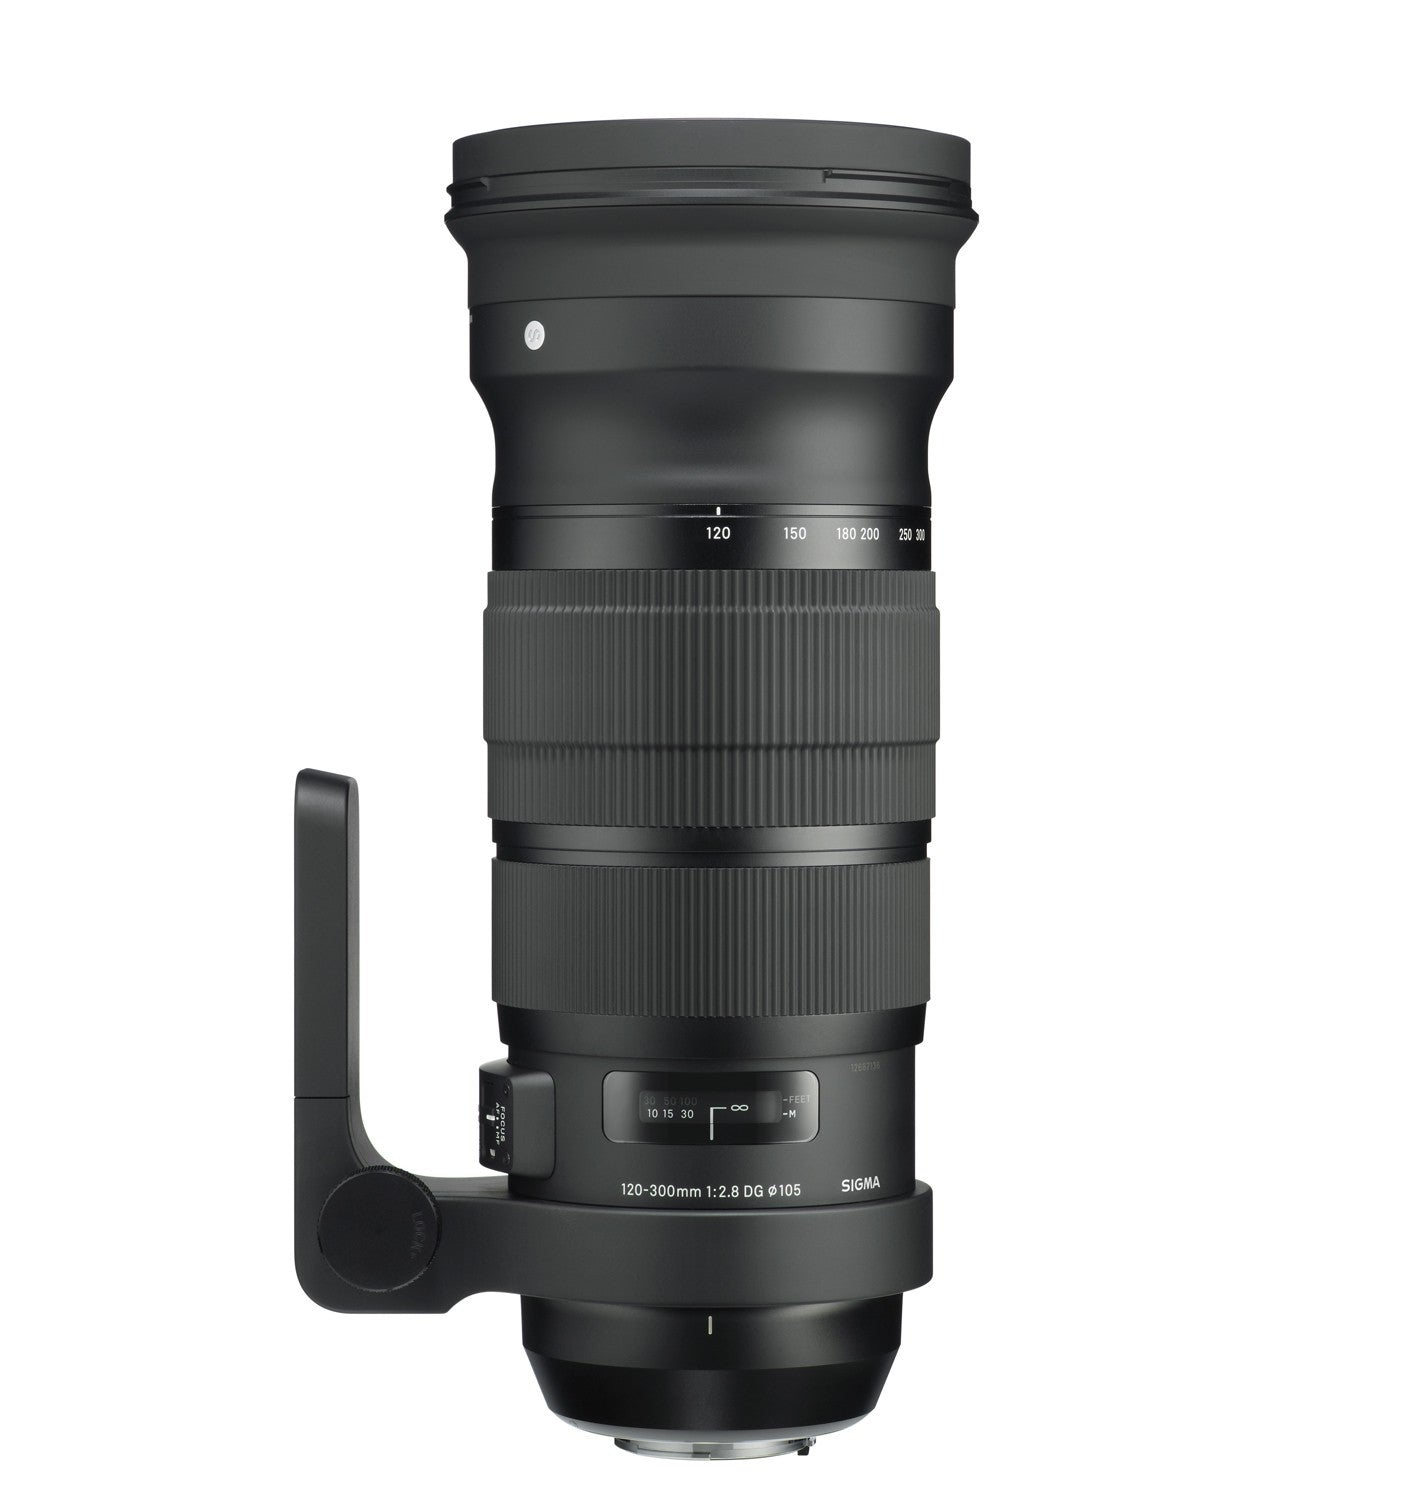 Sigma 120-300mm F2.8 SPORTS DG APO OS HSM (Canon) - Photo-Video - Sigma - Helix Camera